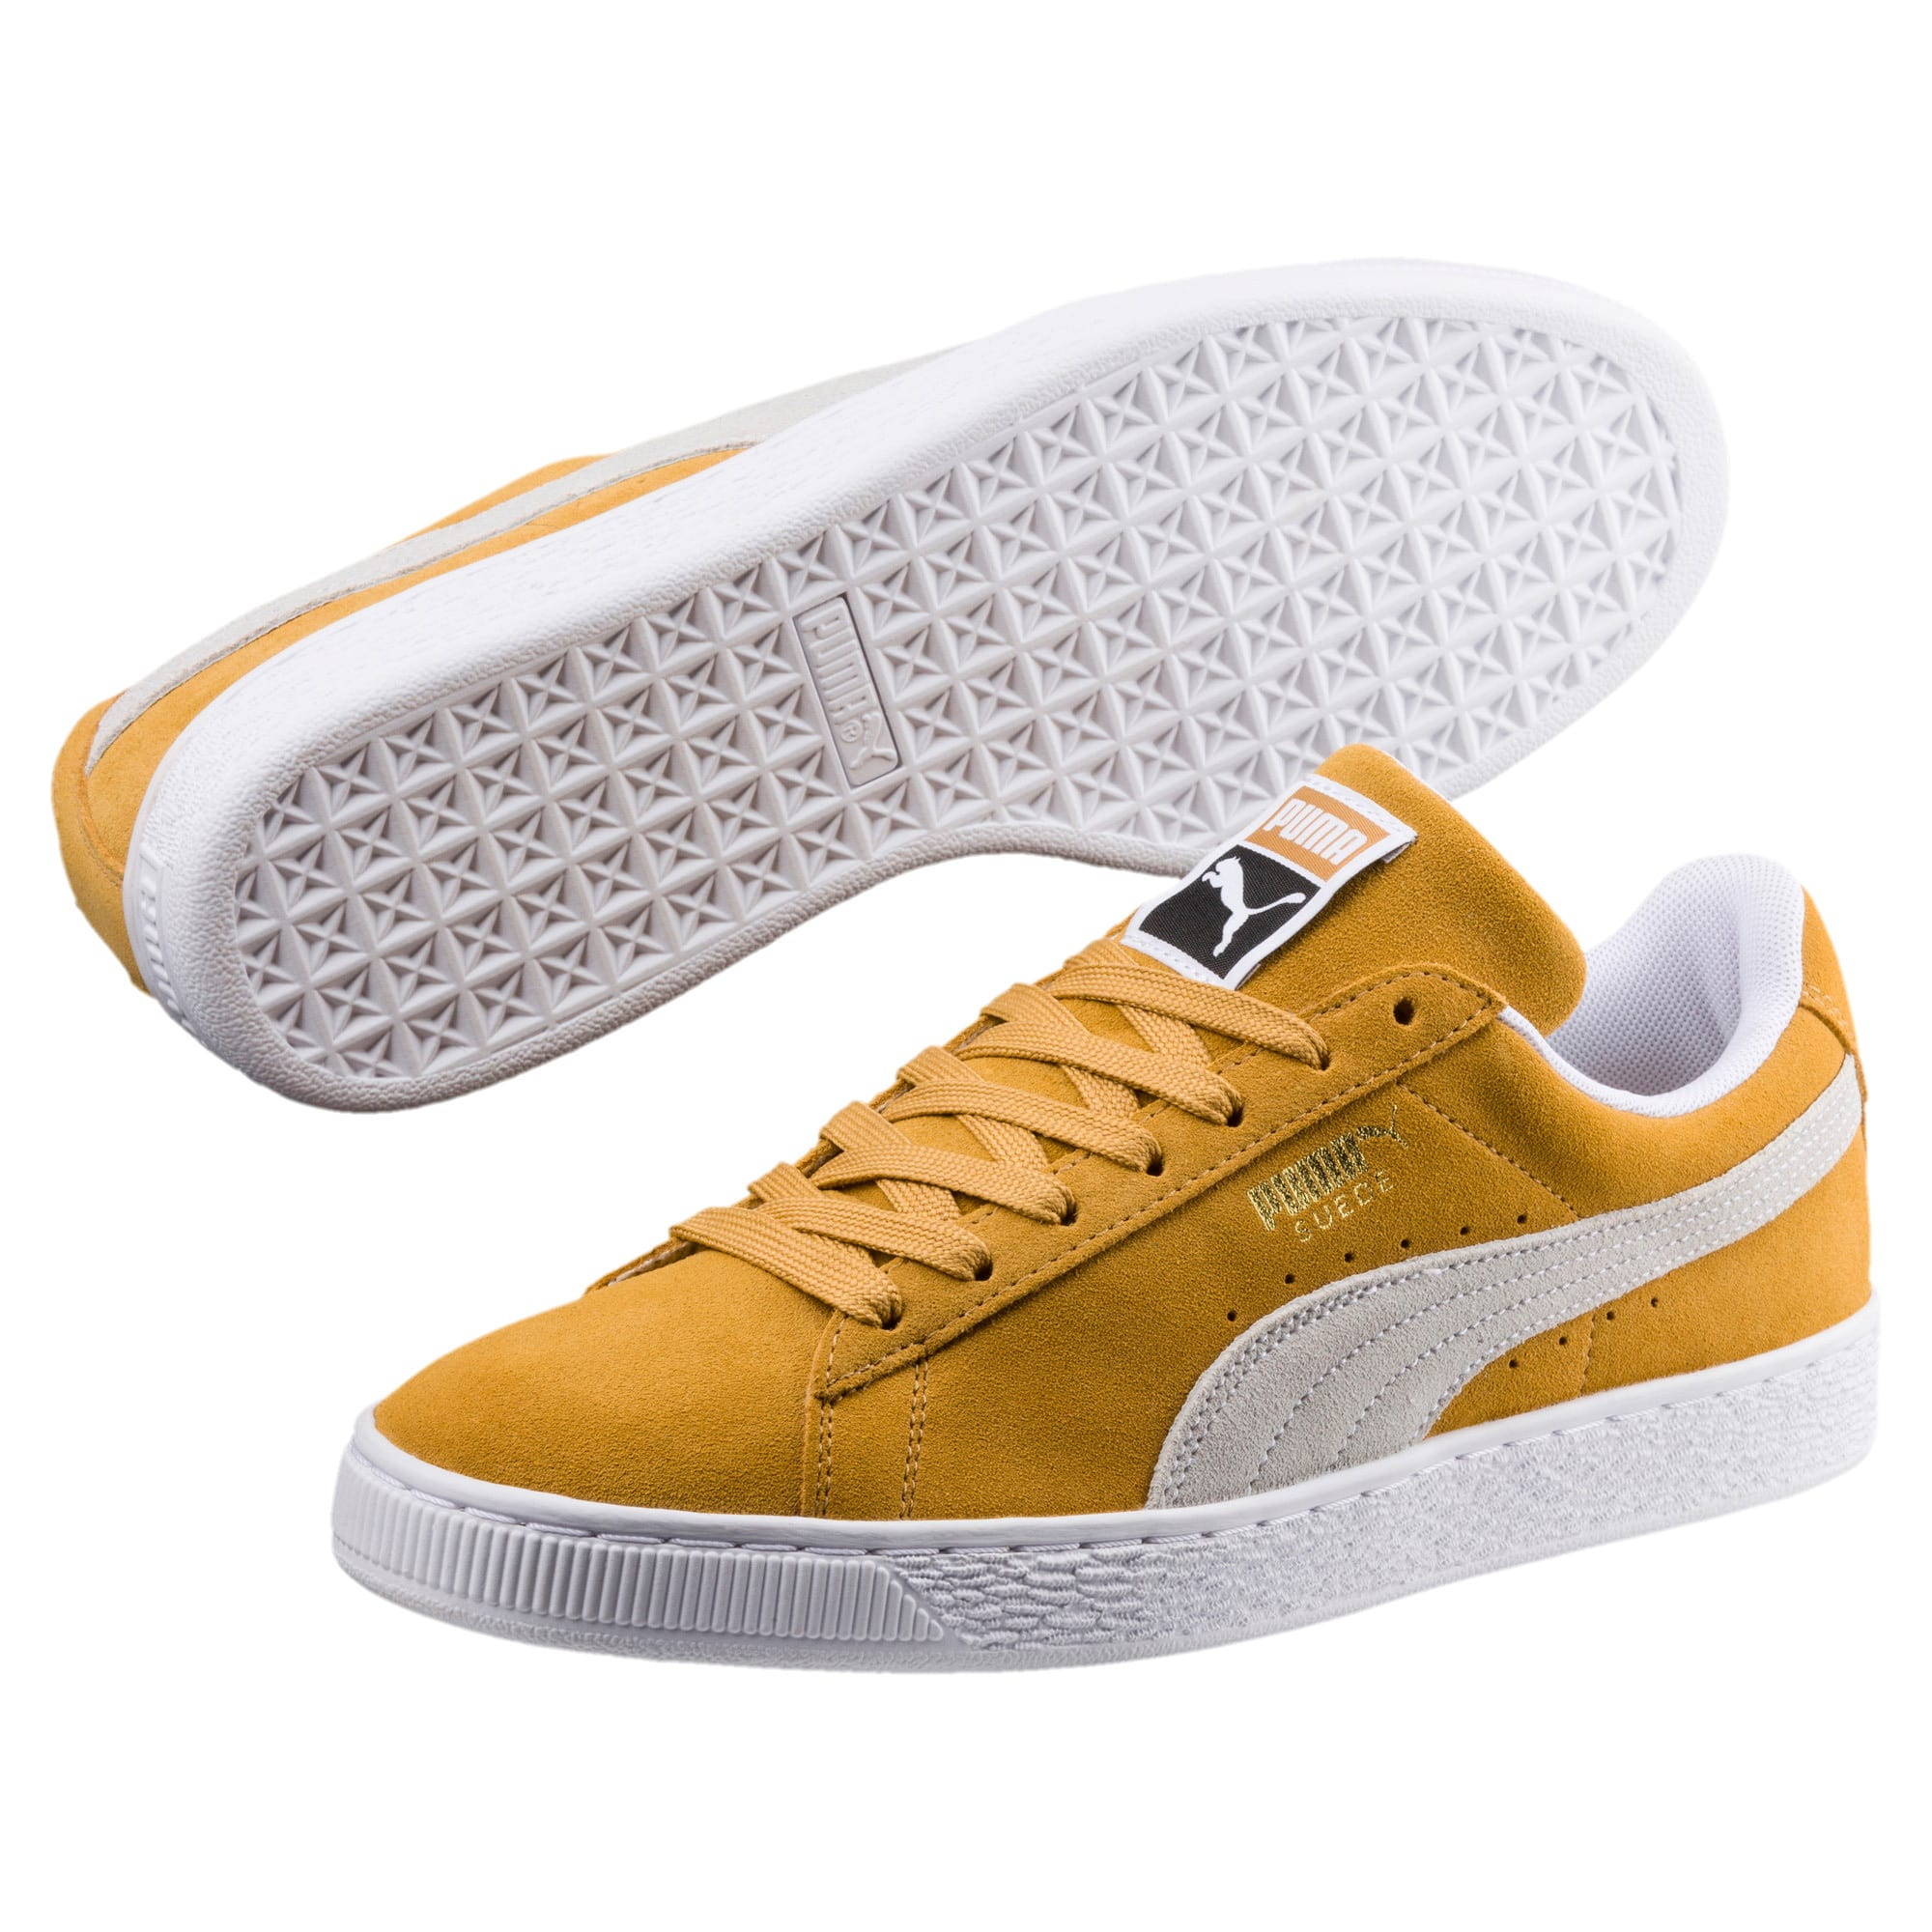 Thumbnail 2 of Suede Classic Trainers, Honey Mustard-Puma White, medium-IND